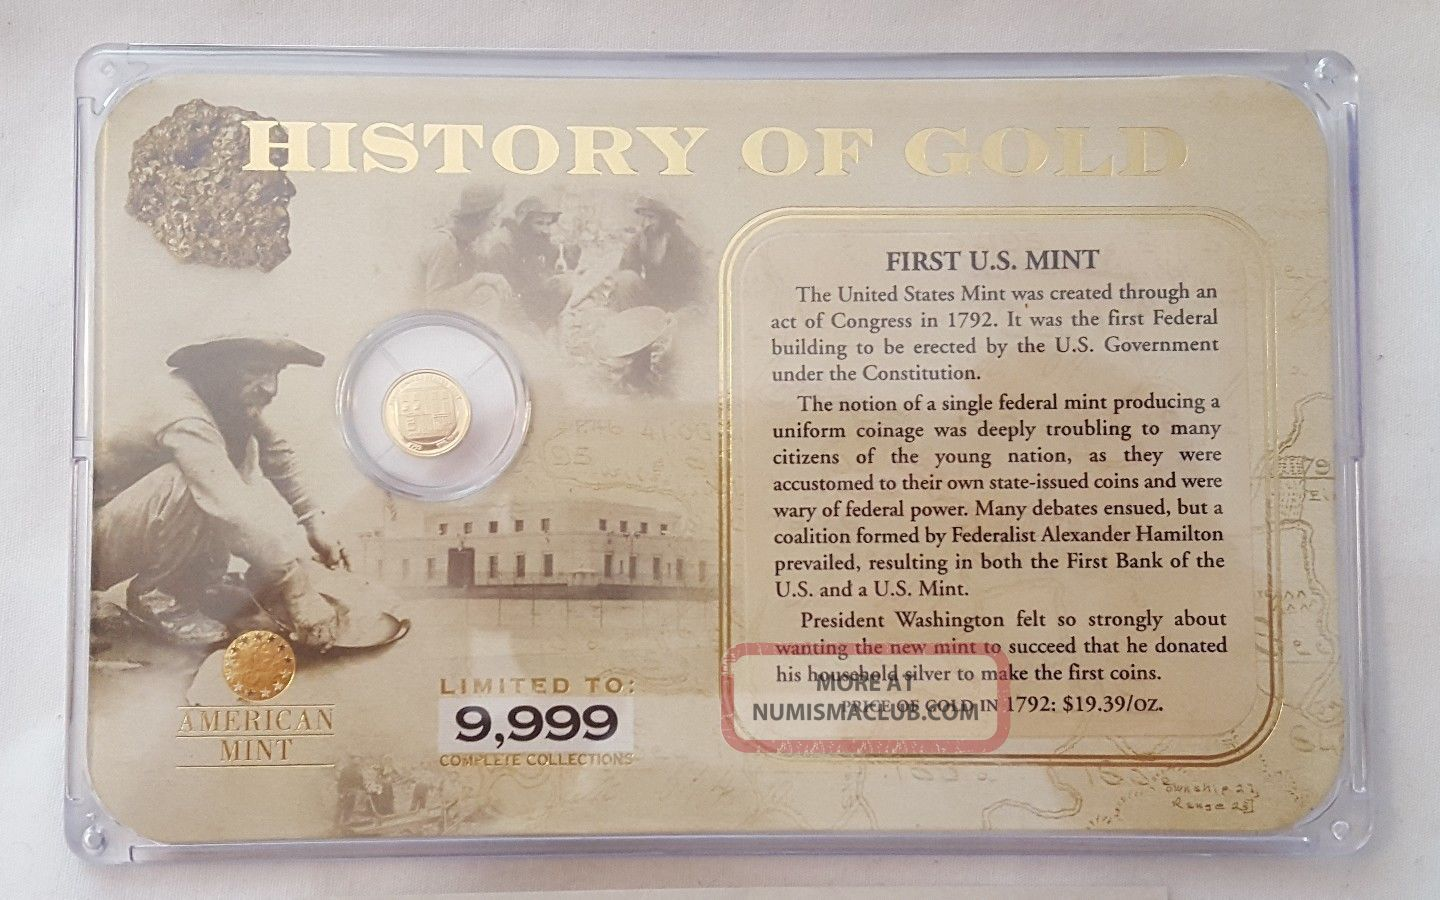 History Of Gold 14k Gold.  5g Mini Coin Fist Us 1792 In Case Commemorative photo